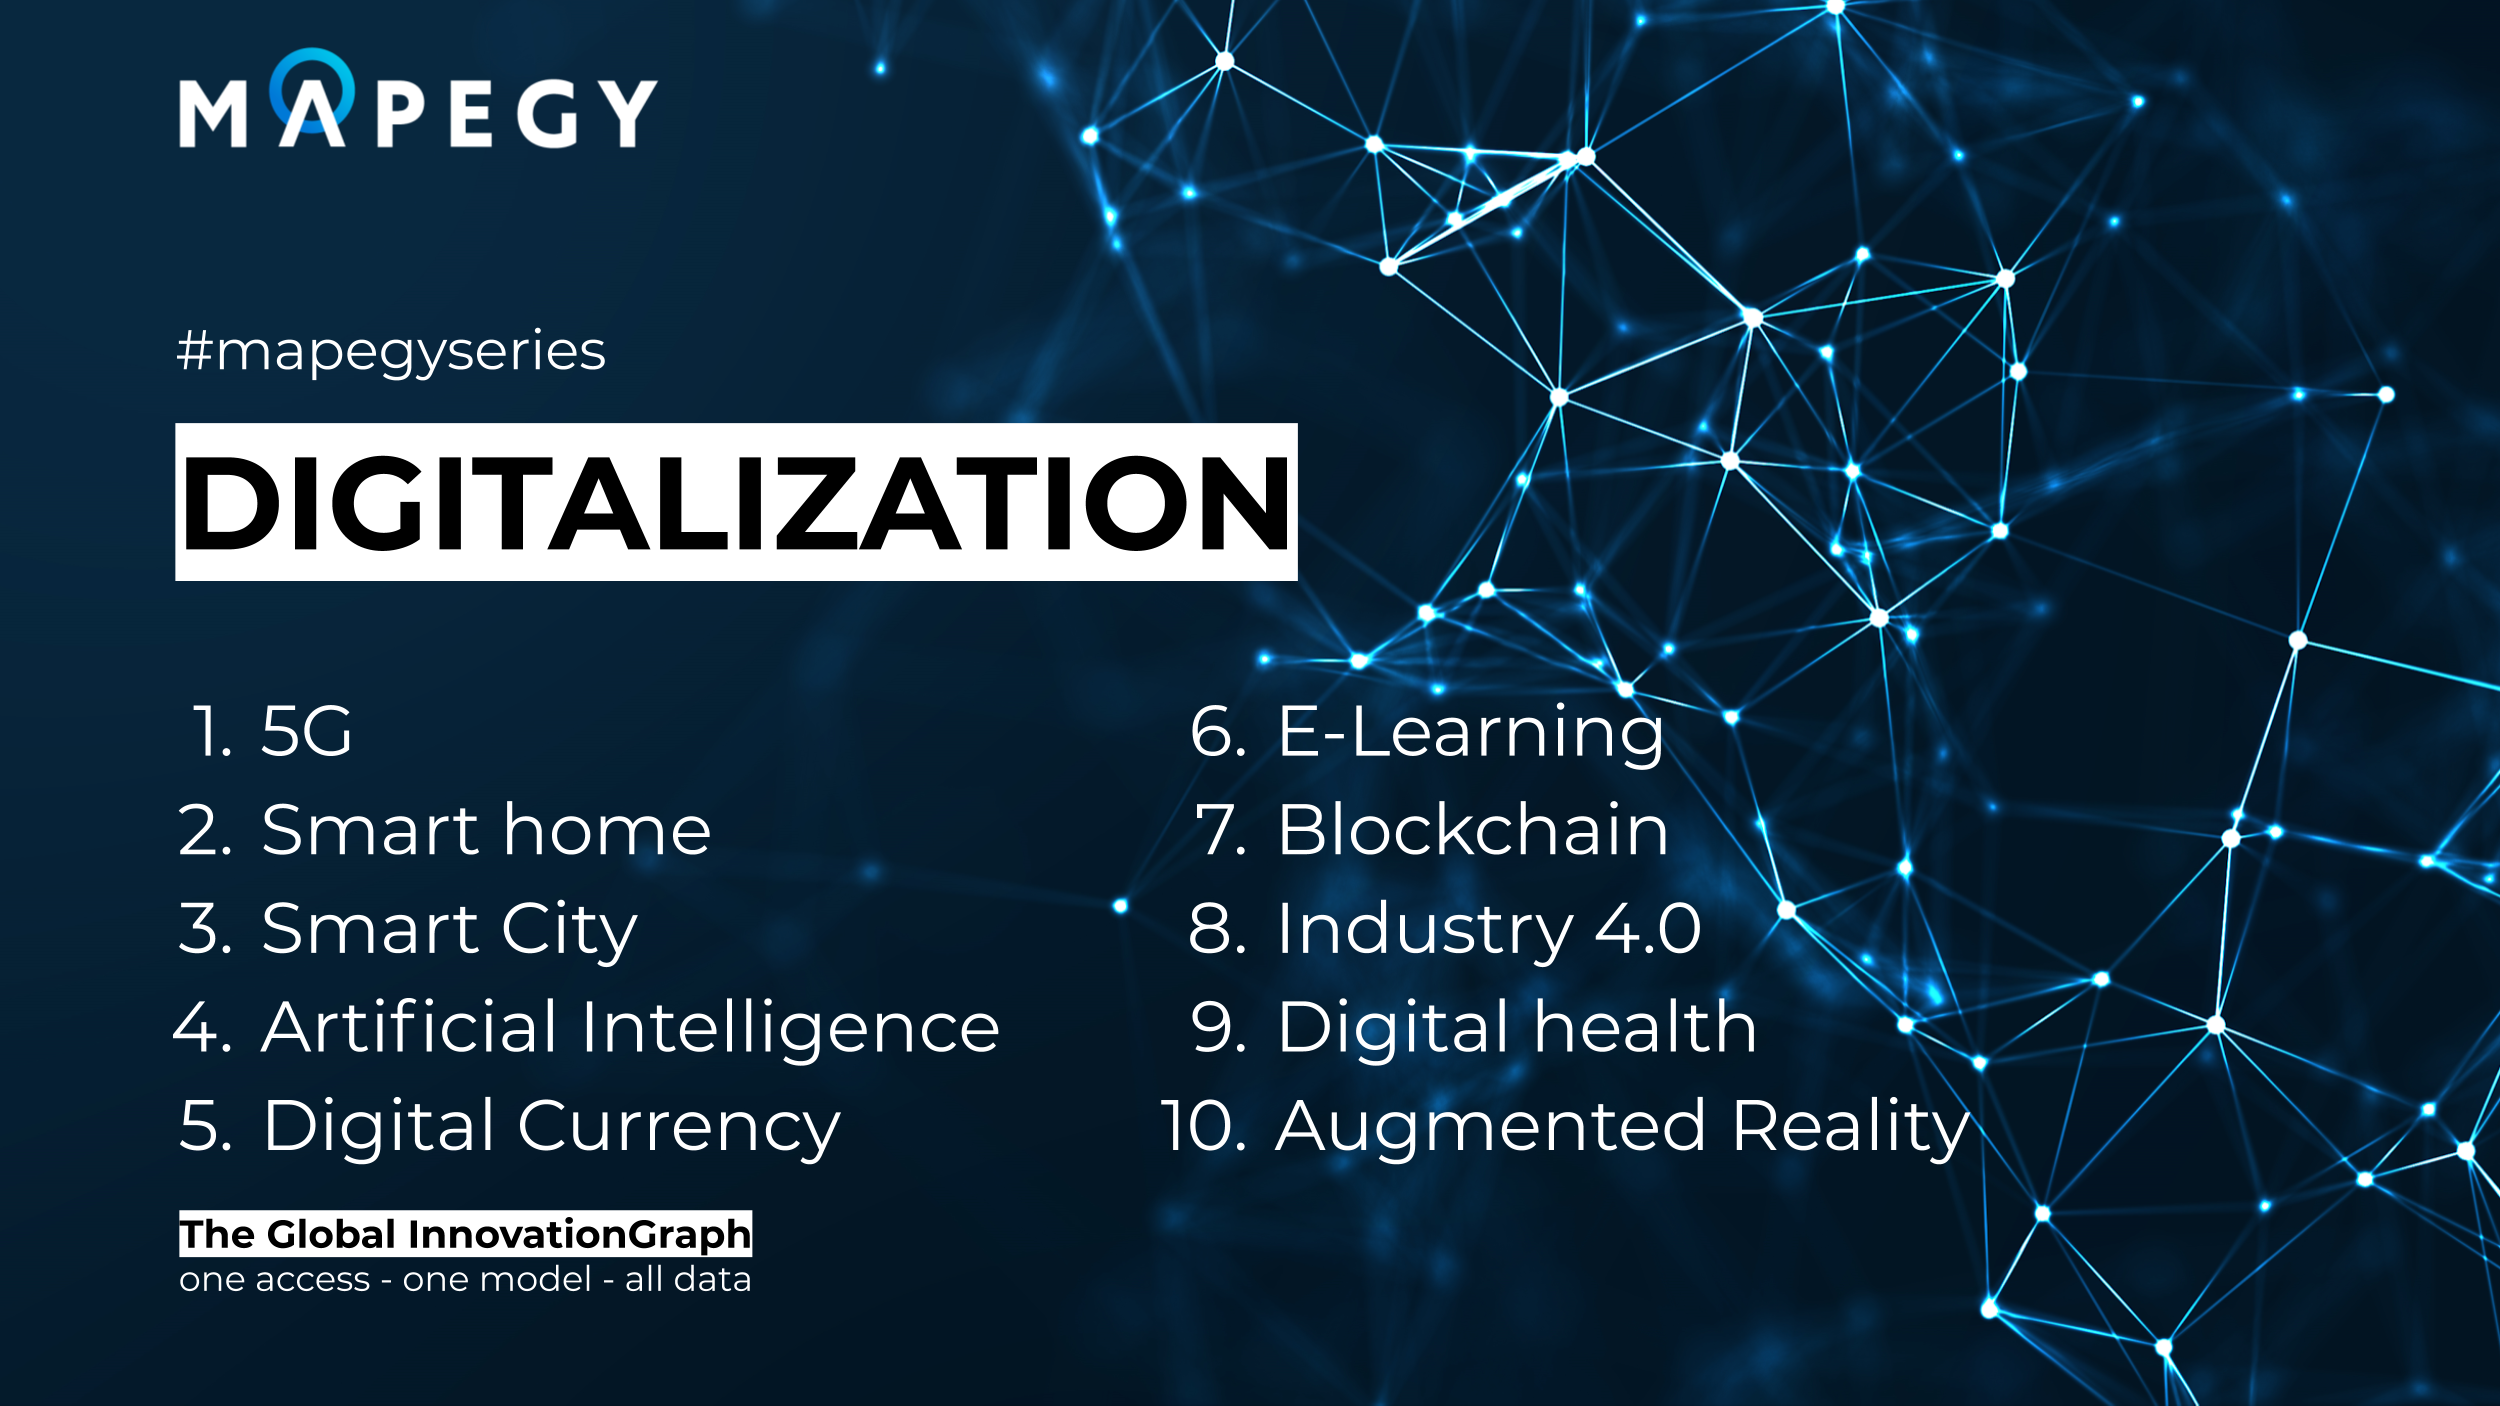 Top 10 Digitalization Megatrends for 2020